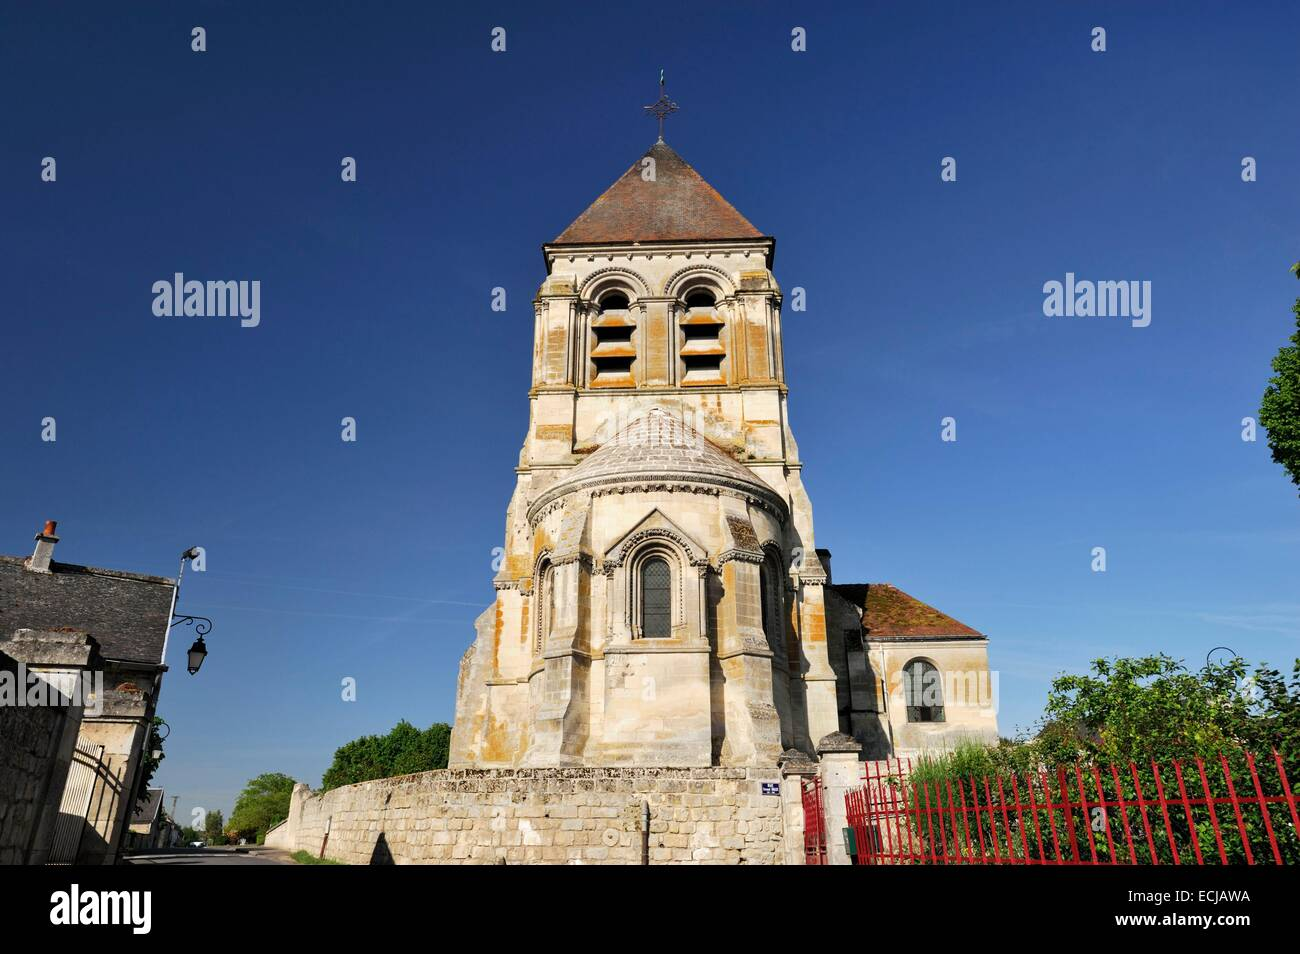 France, Aisne, Berzy le Sec, Saint Quentin church dating from the 12th century - Stock Image